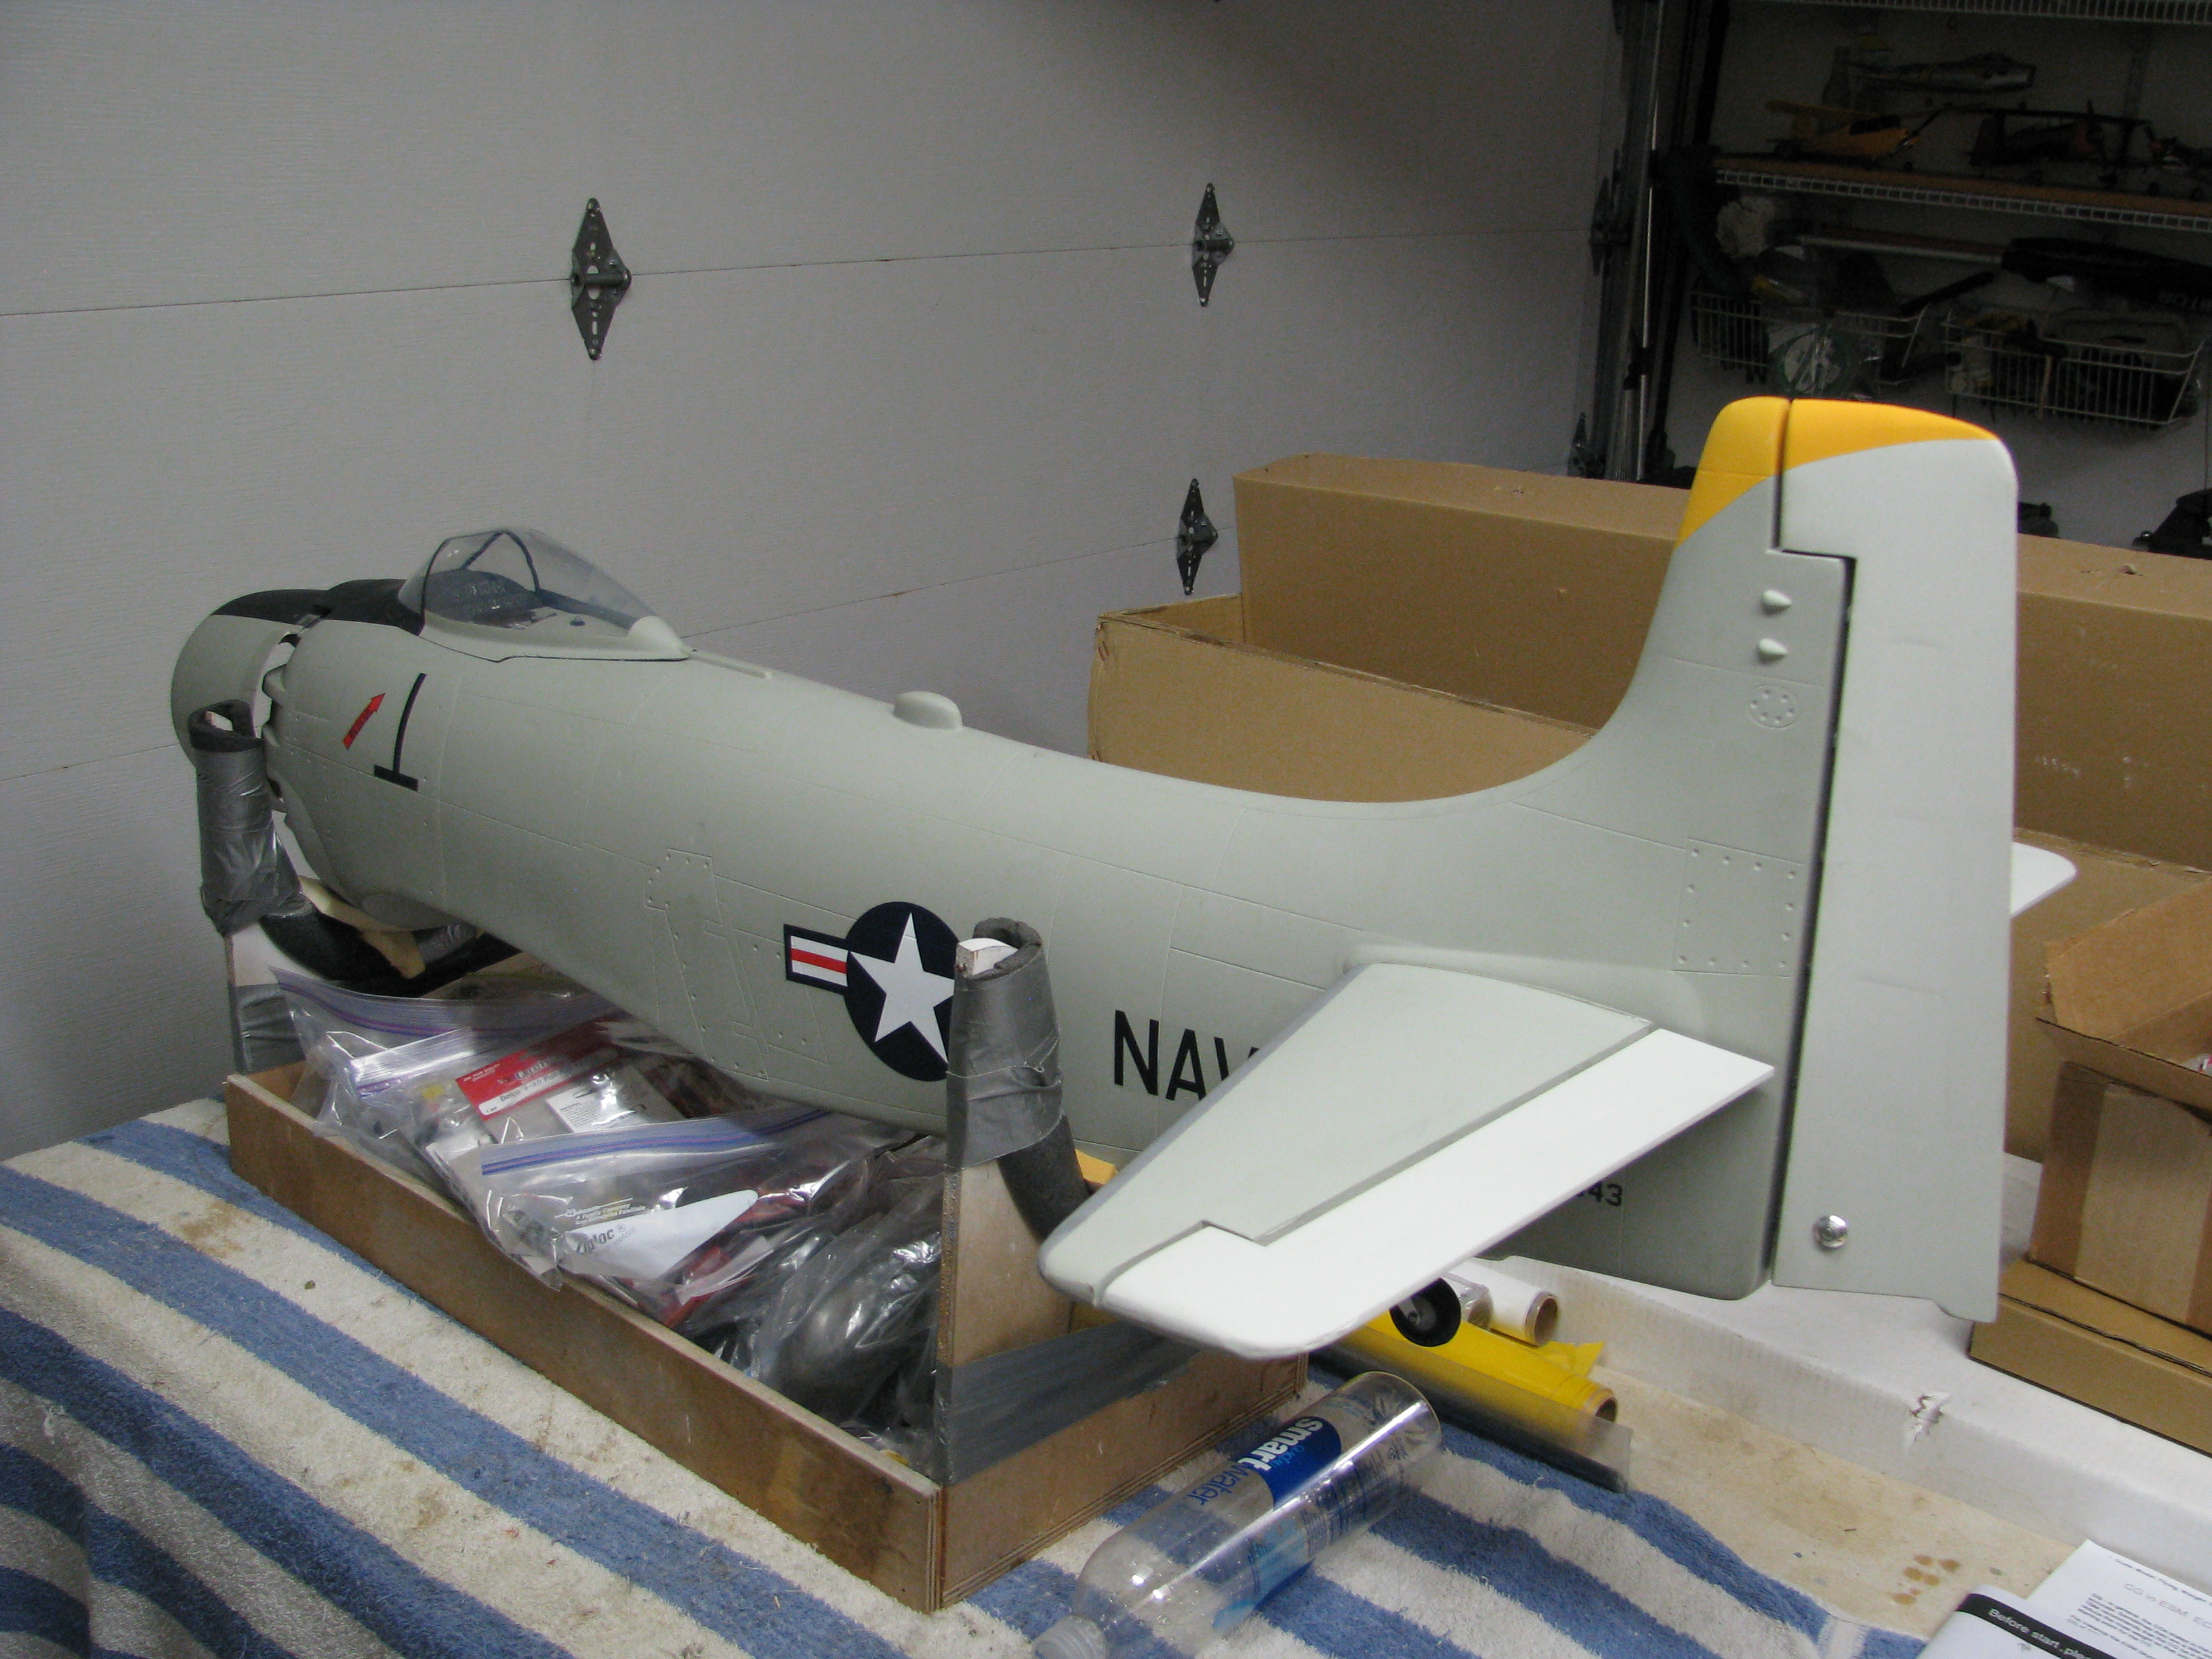 Click image for larger version  Name:Skyraider - 13 001.JPG Views:46 Size:1.95 MB ID:2105439